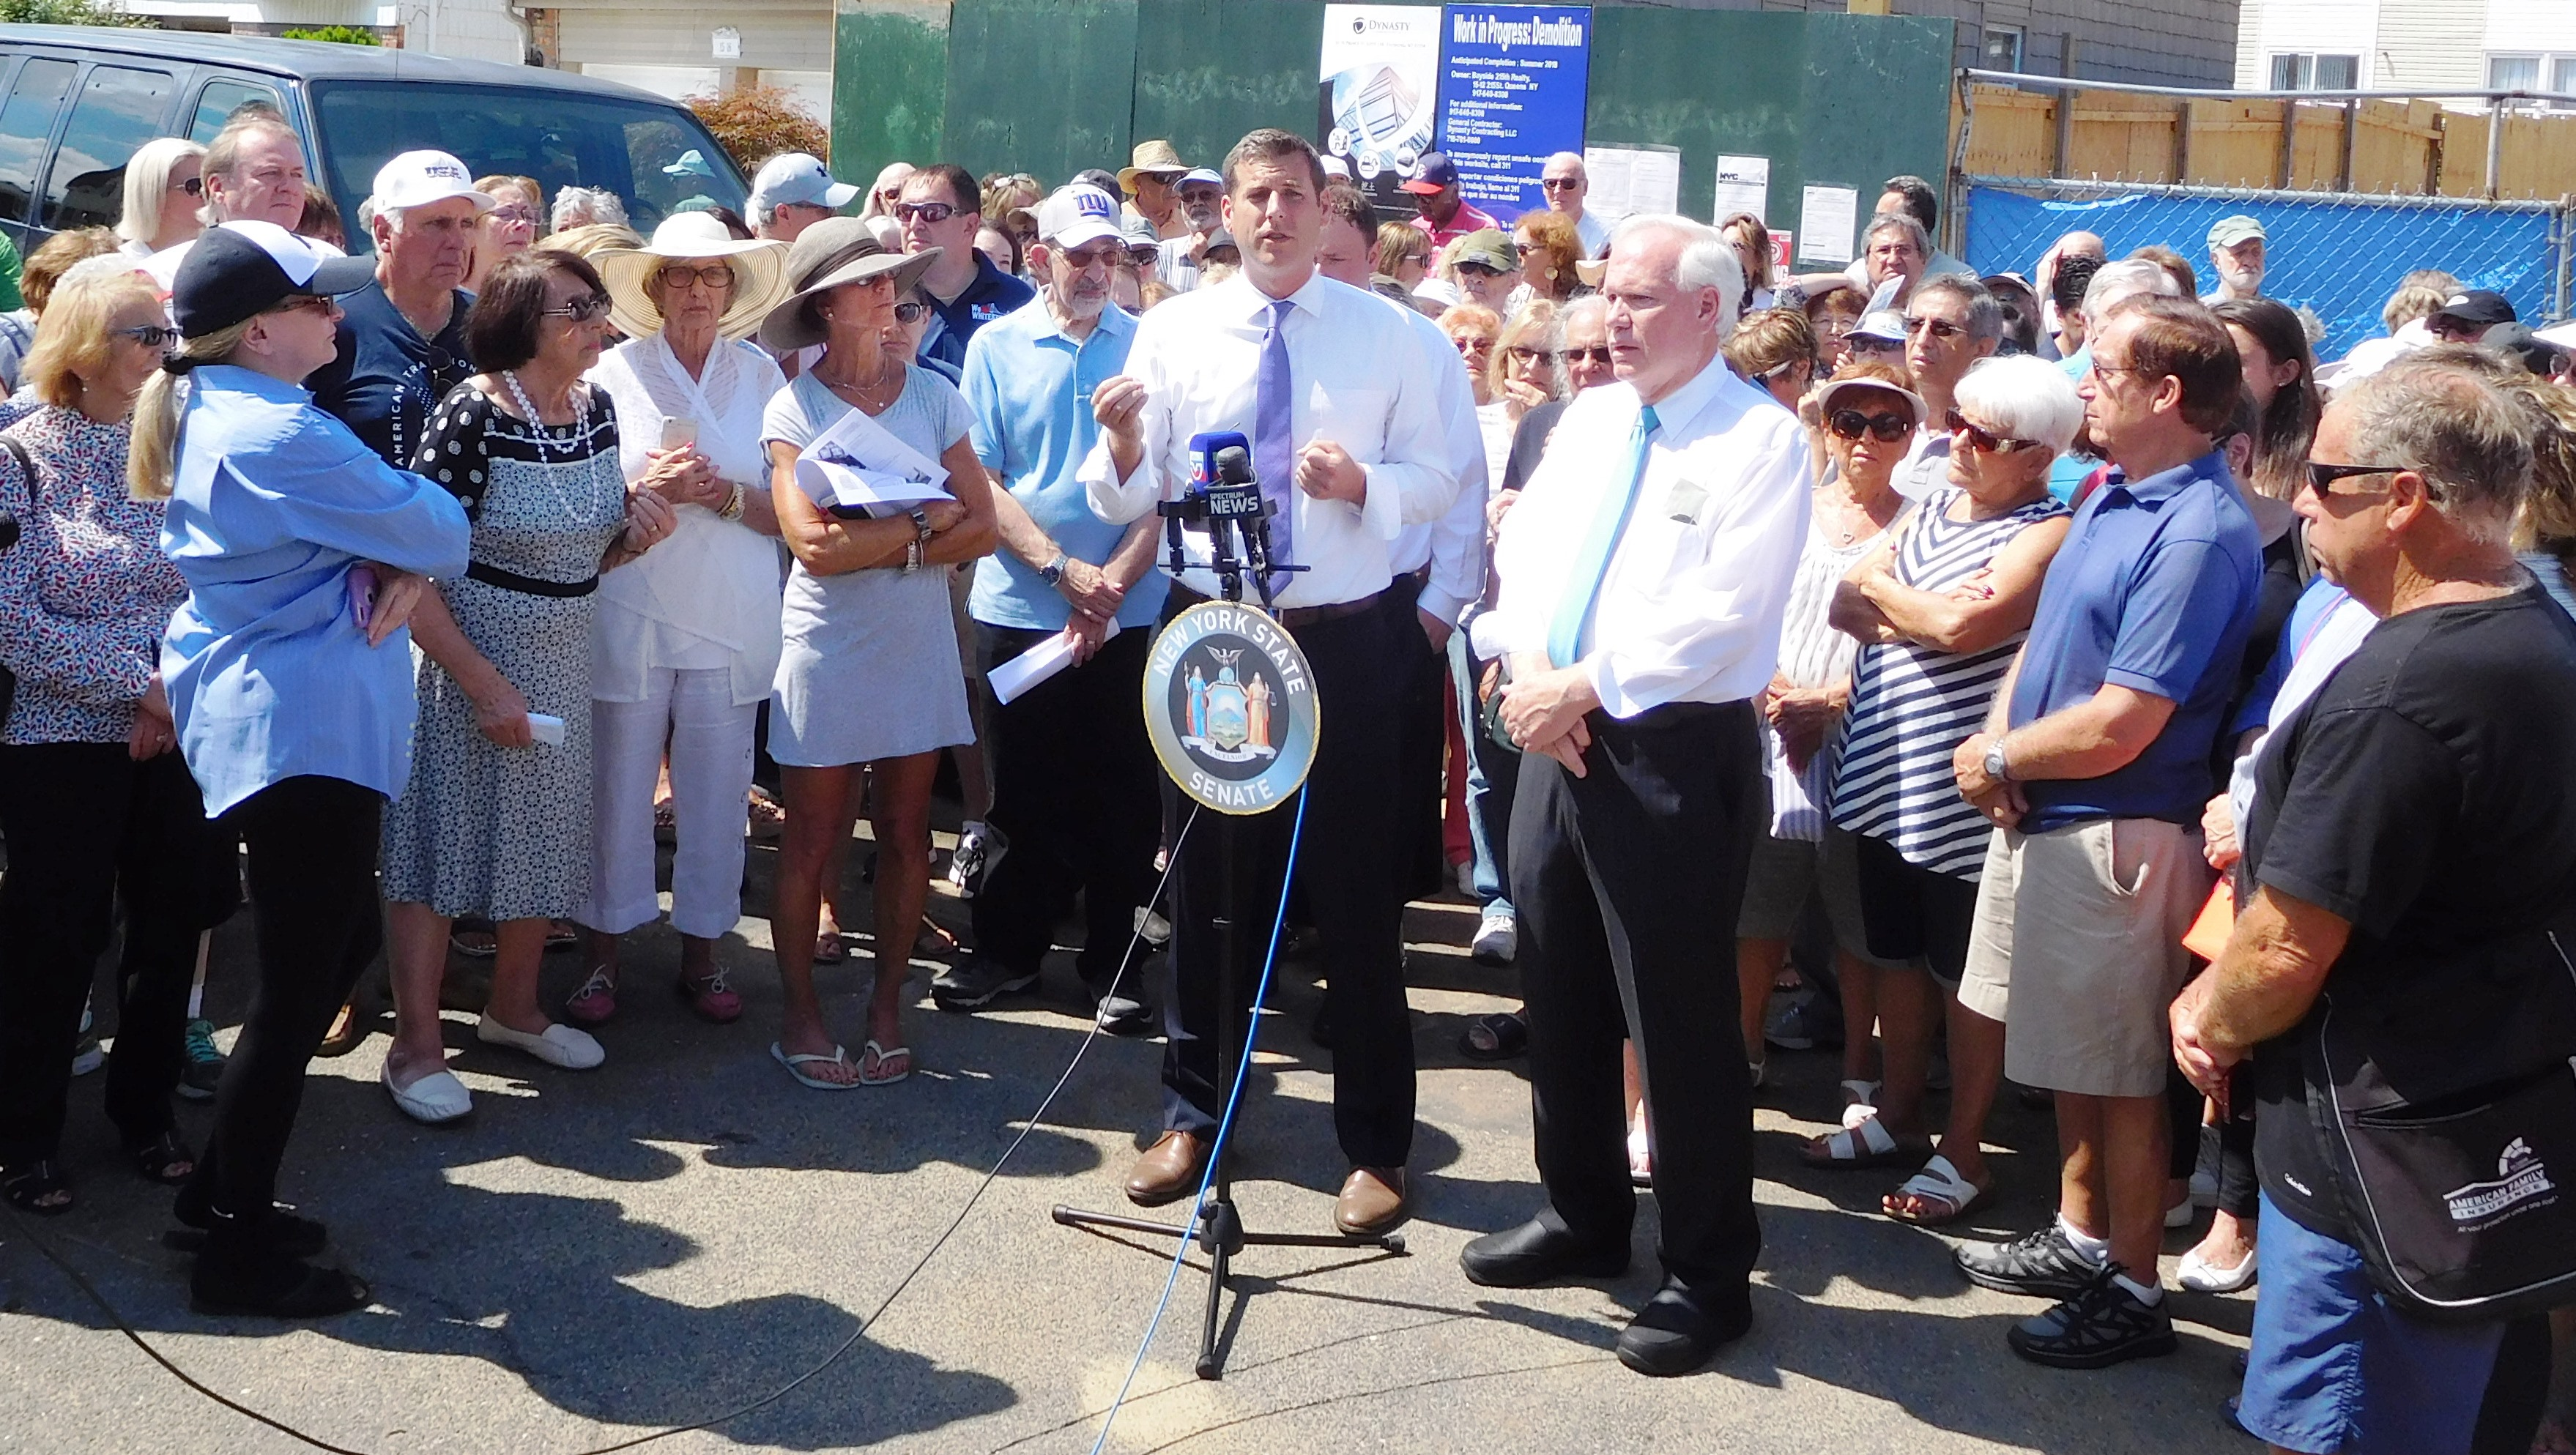 On July 20, 2018, Assemblyman Braunstein, Senator Tony Avella, civic leaders, and Bay Terrace residents held a rally against overdevelopment.<br />&nbsp;